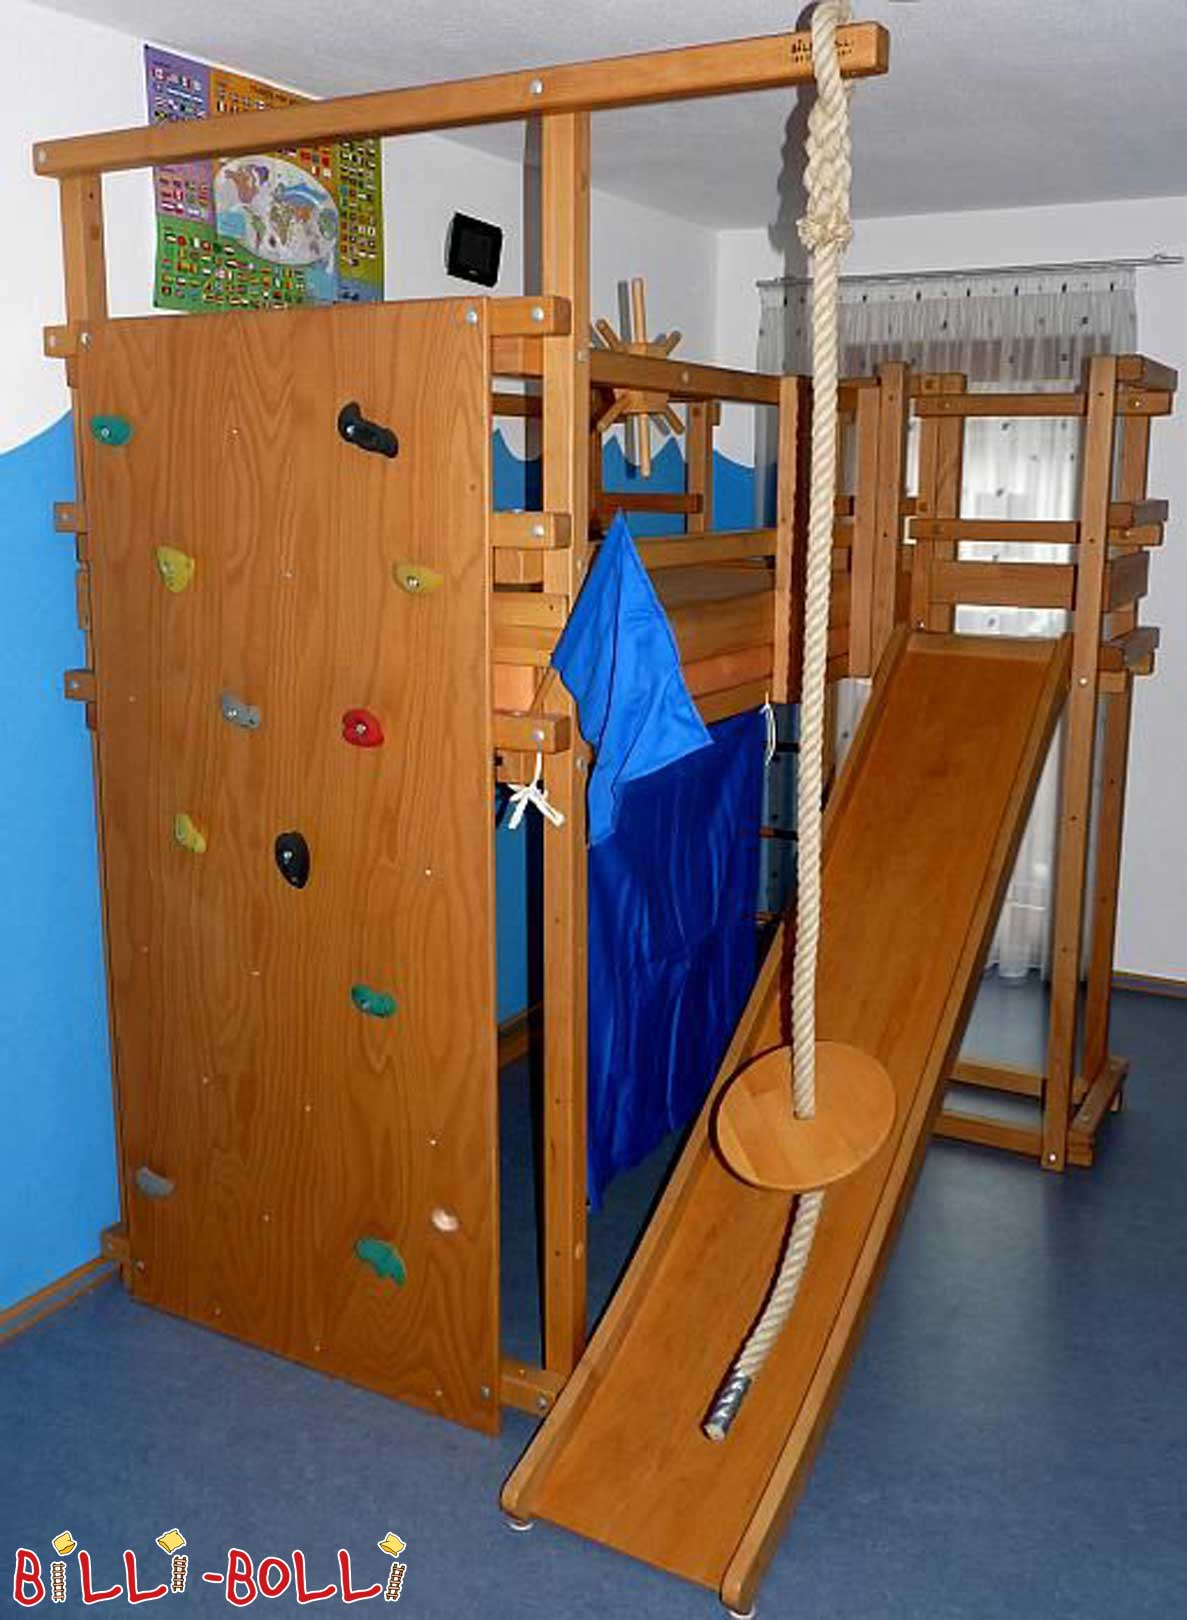 Secondhand page 76 billi bolli kids furniture for Pirate bed with slide